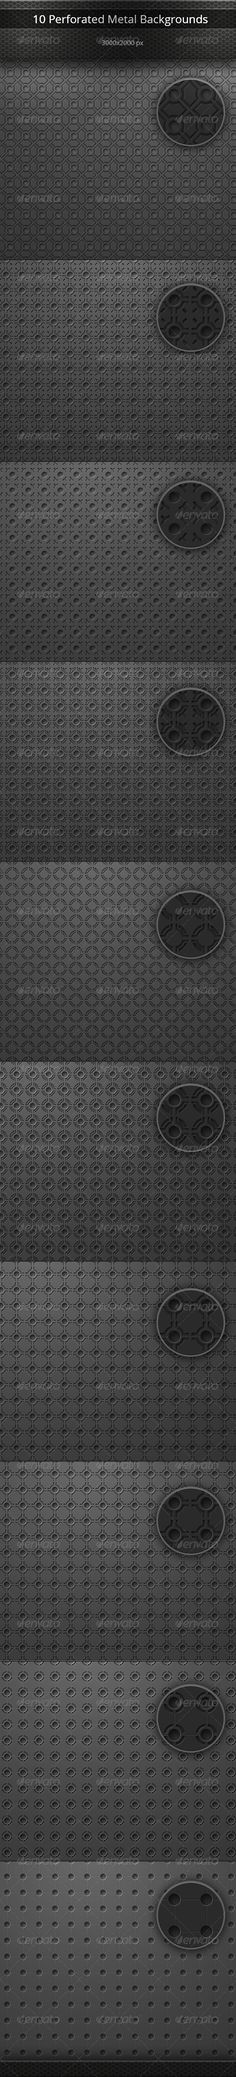 Perforated Metal Backgrounds Set